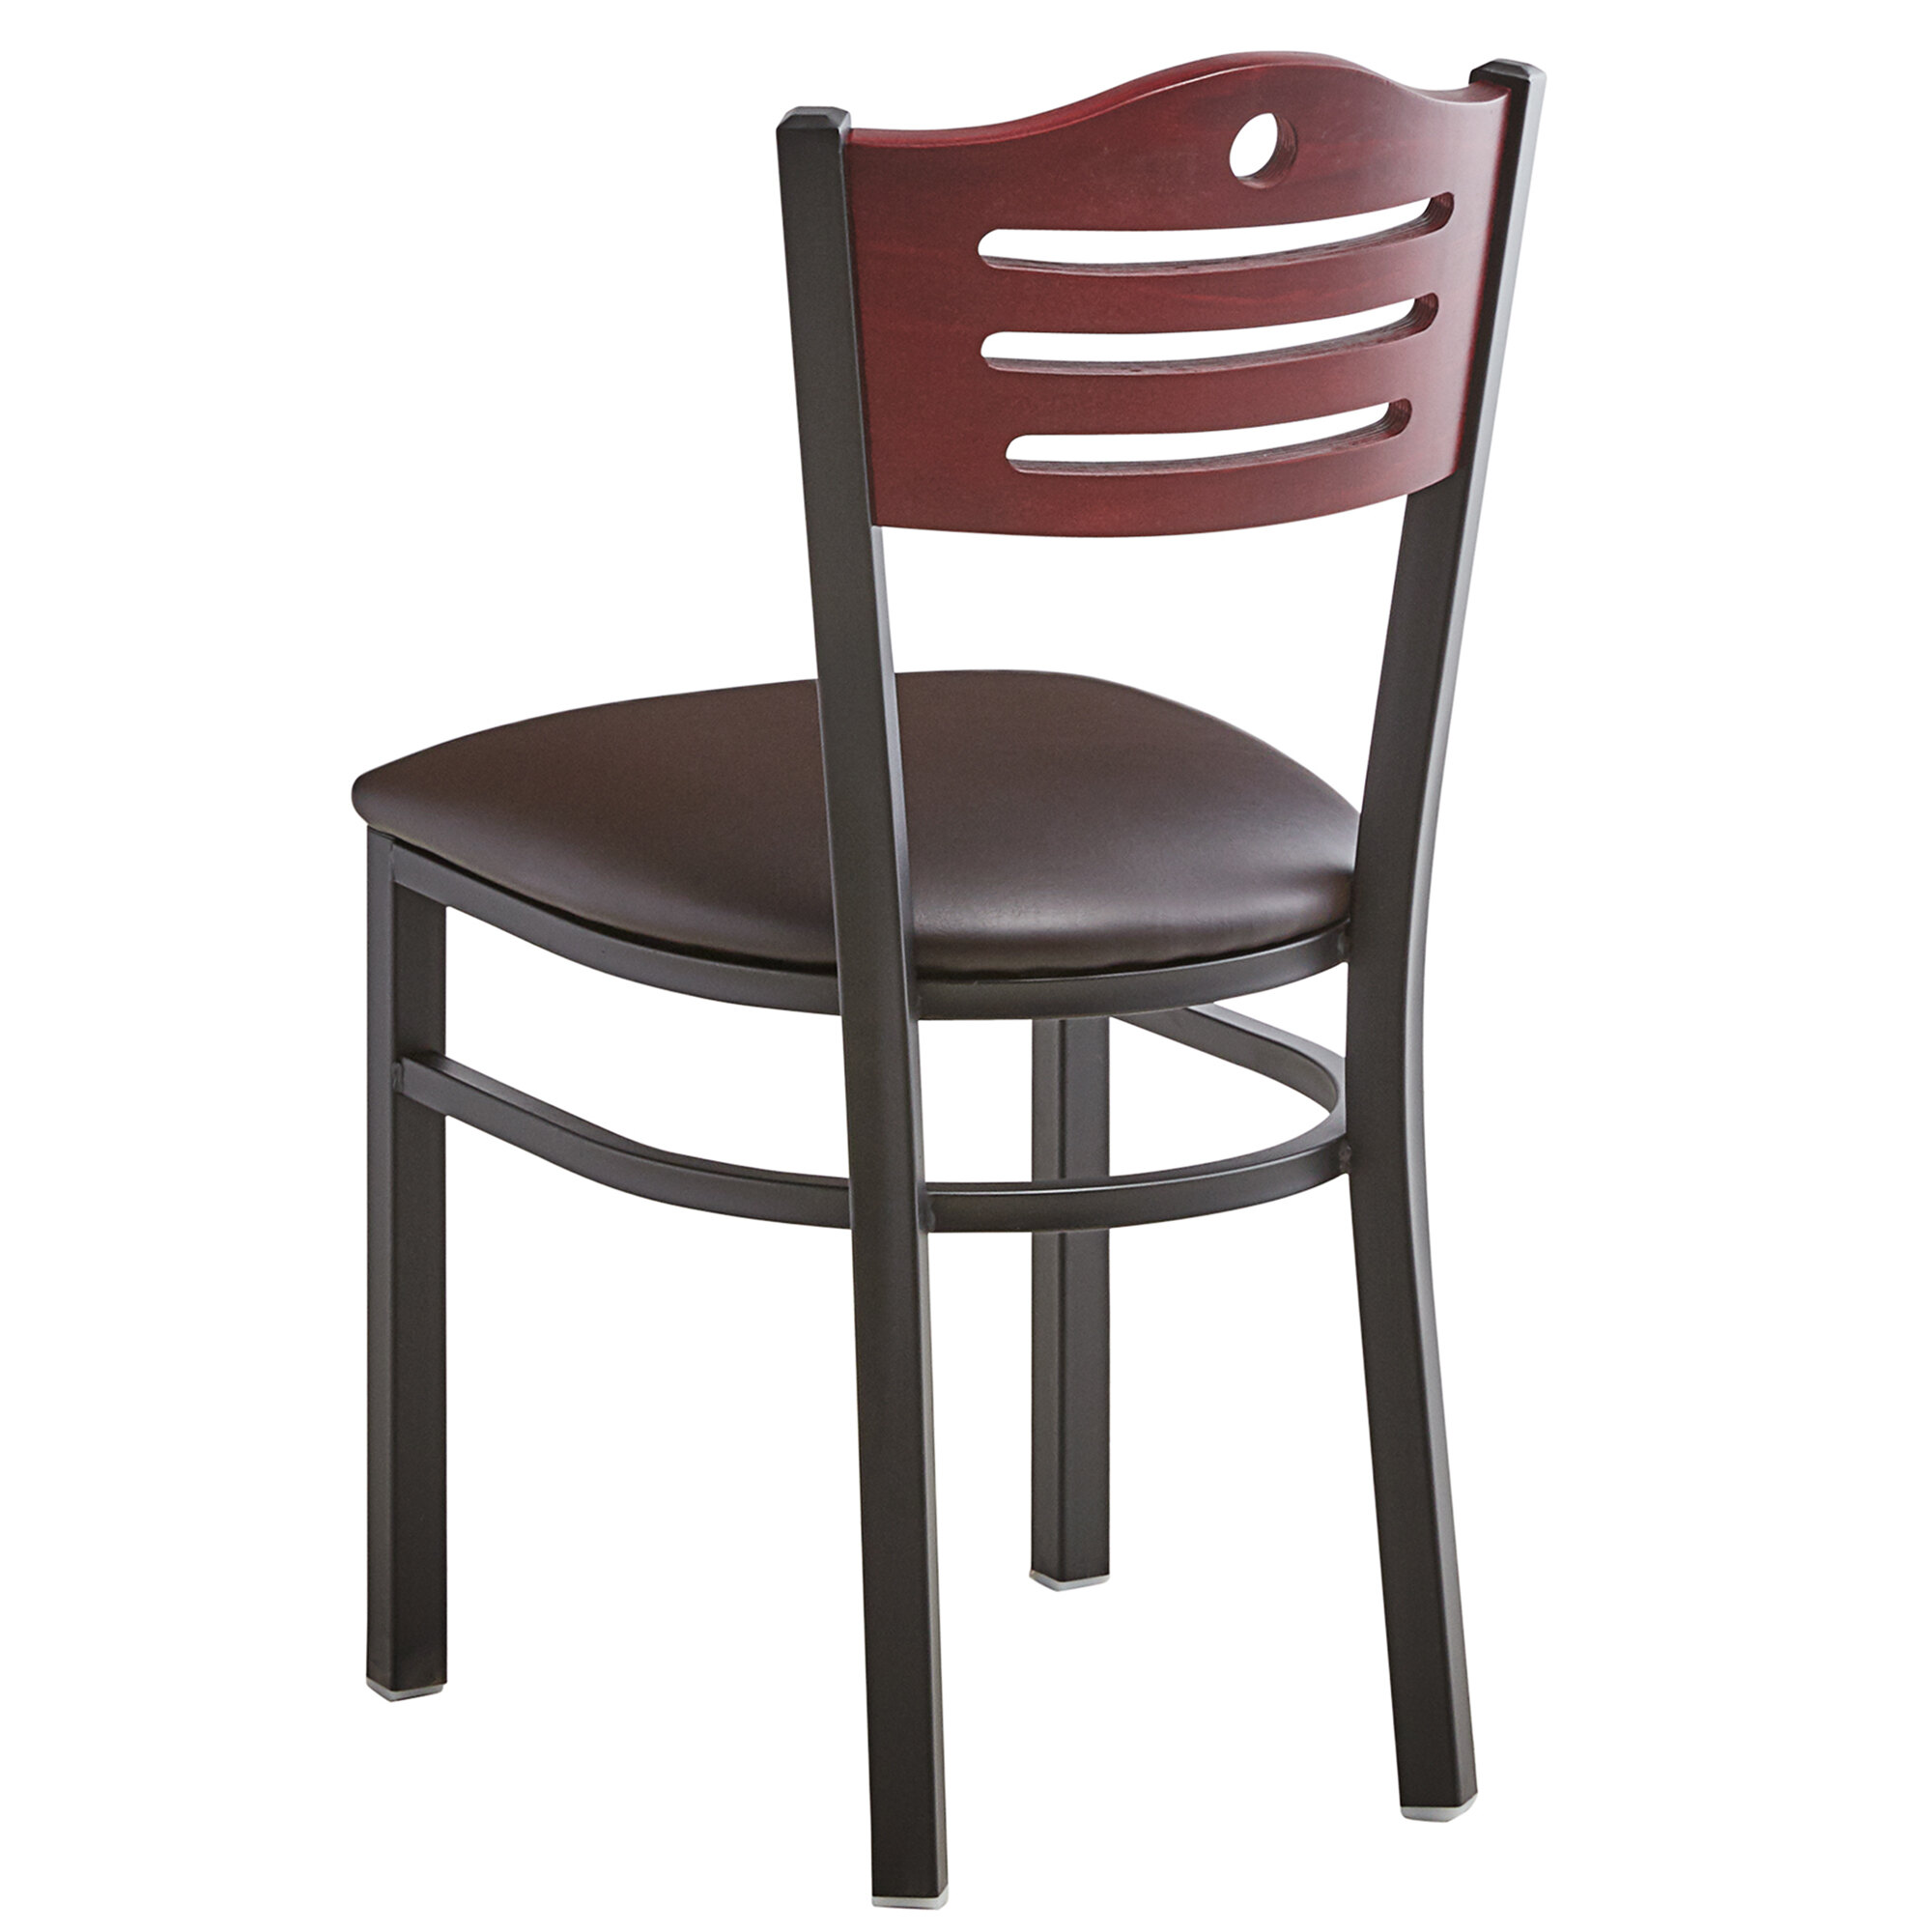 #181 - Slat Back Design Restaurant Metal Chair with Mahogany Wood Back and Dark Brown Vinyl Seat